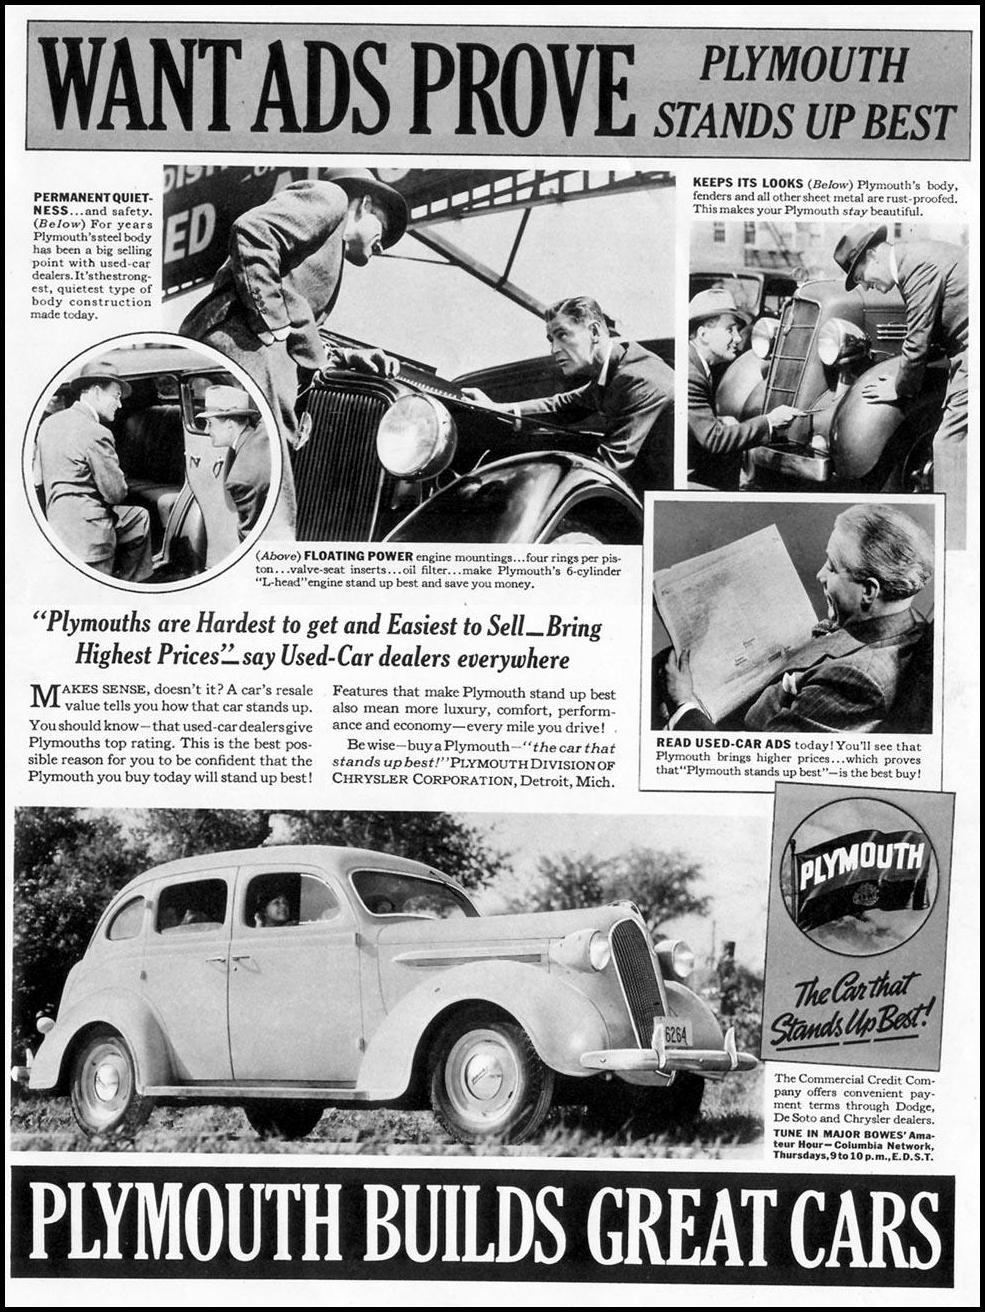 PLYMOUTH AUTOMOBILES LIFE 09/13/1937 p. 1